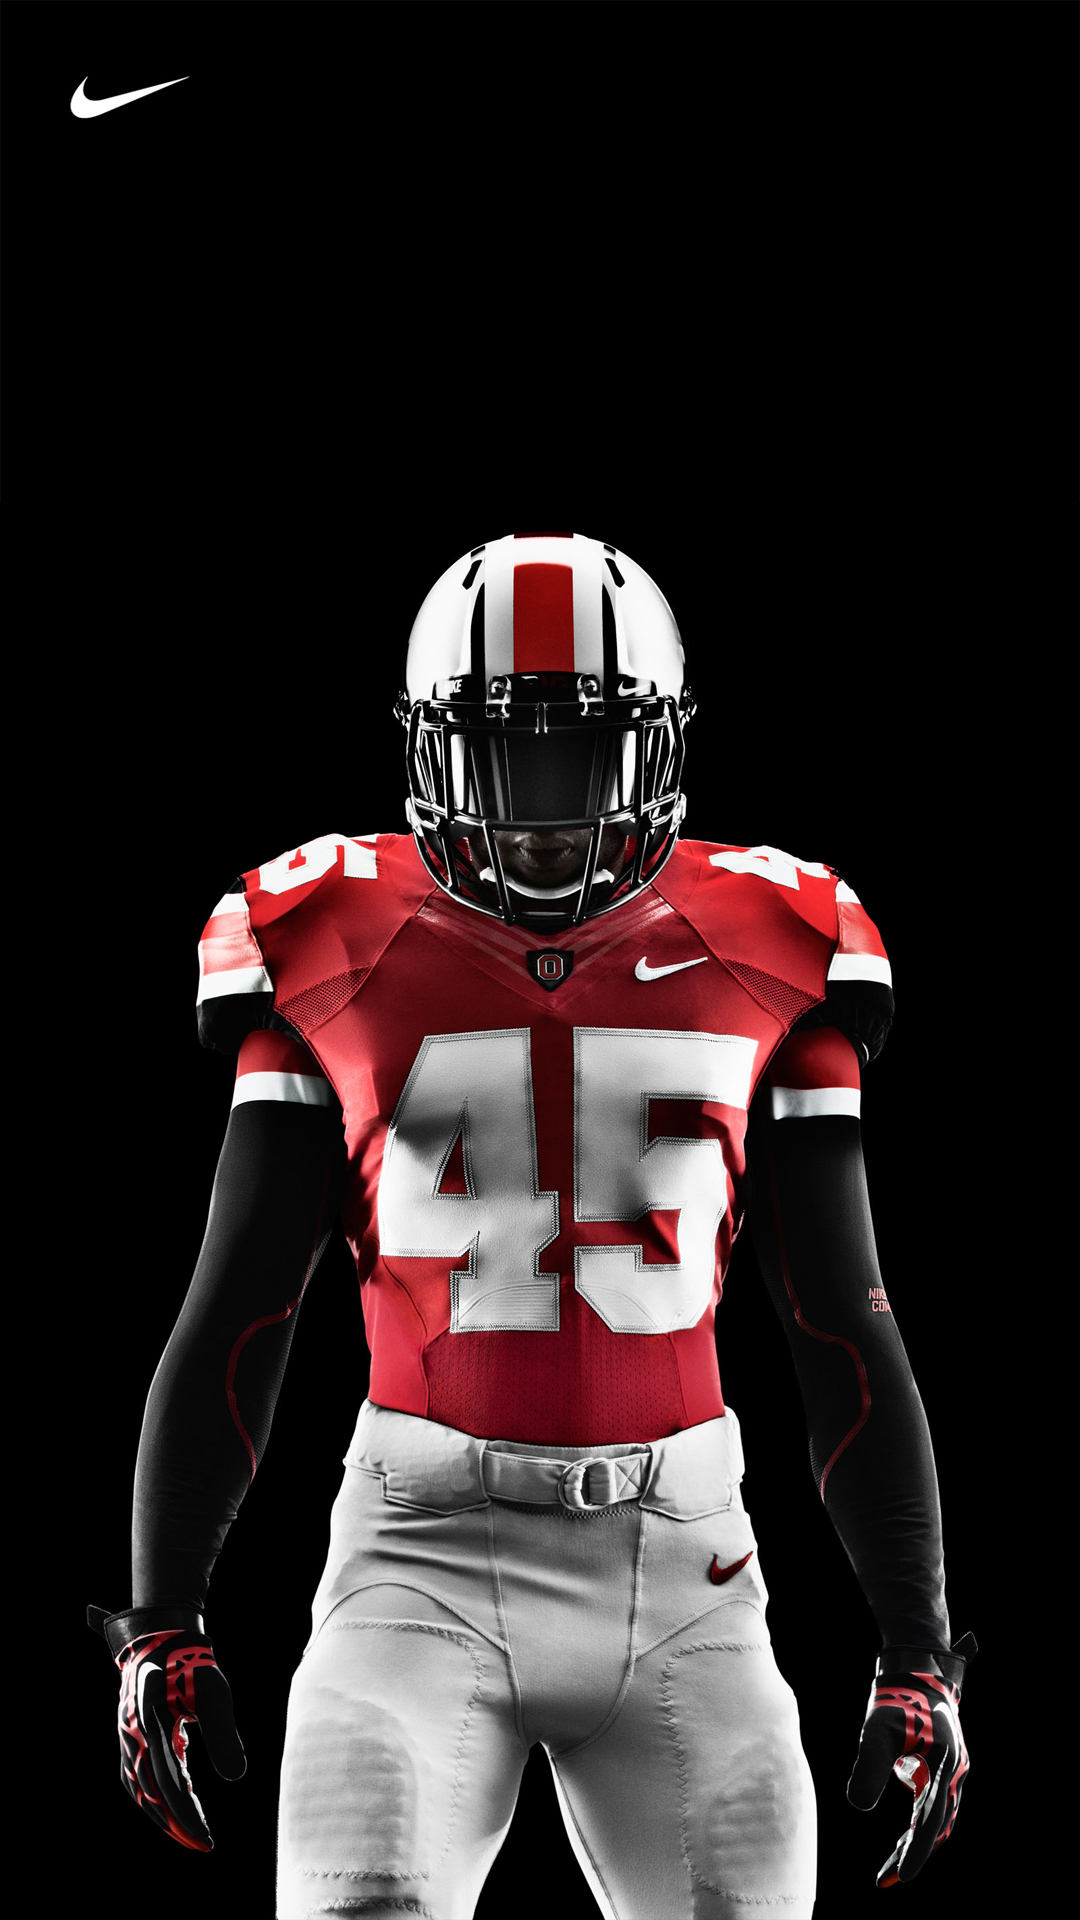 Ohio State Nike Pro Combat Ohio State Football Wallpaper Nike